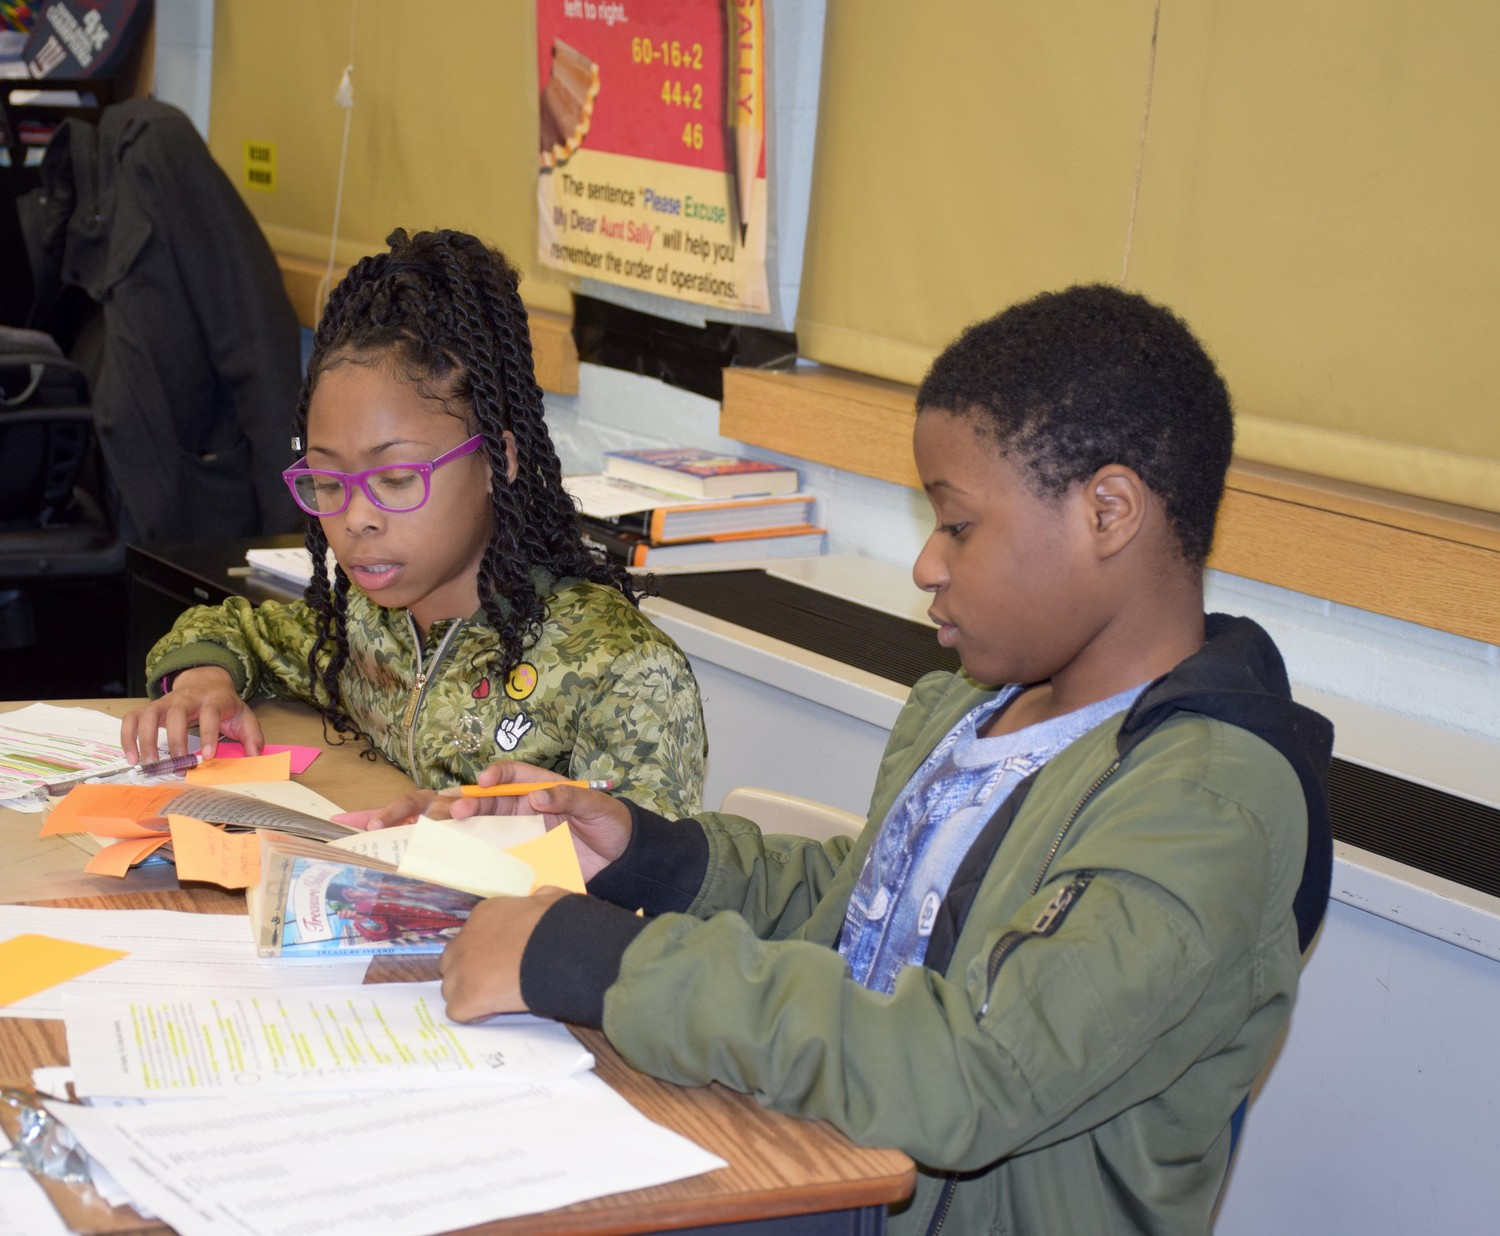 Sixth-graders Aliana Bryan and Umar Ahmed reviewed vocabulary during a recent class lesson.